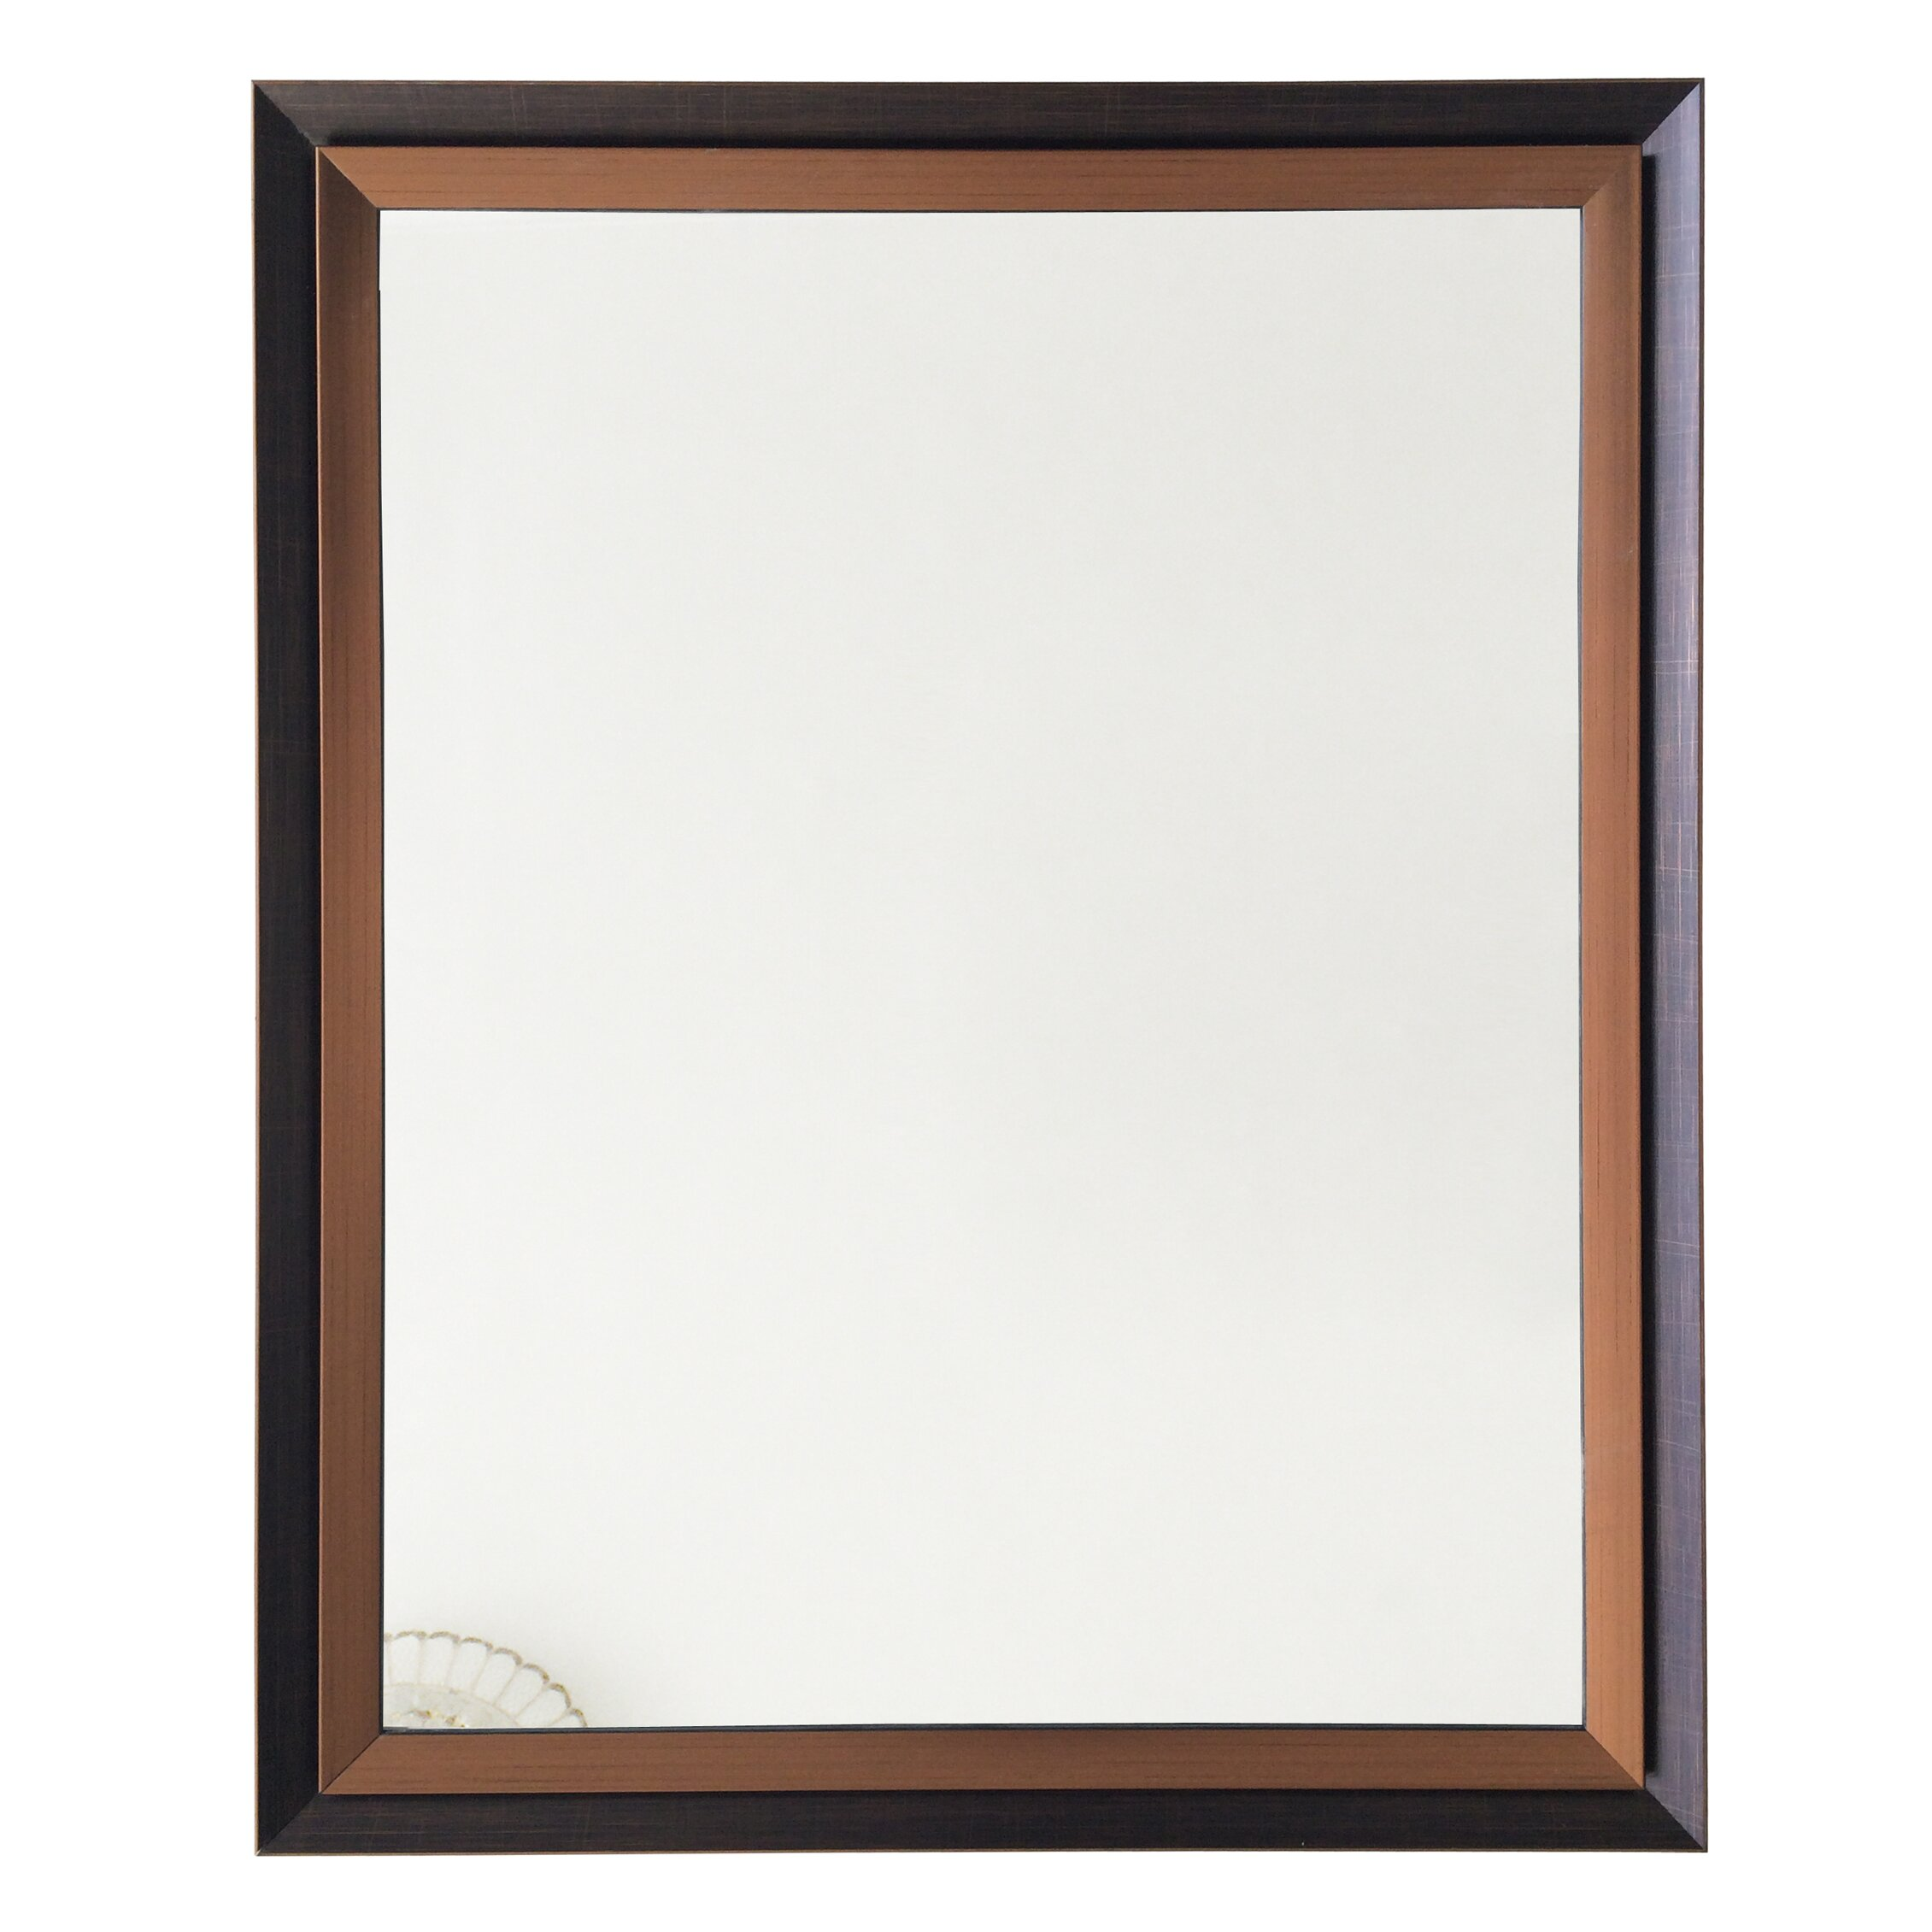 Kingwinhomedecor framed wall mirror reviews wayfair - Home decor wall mirrors collection ...